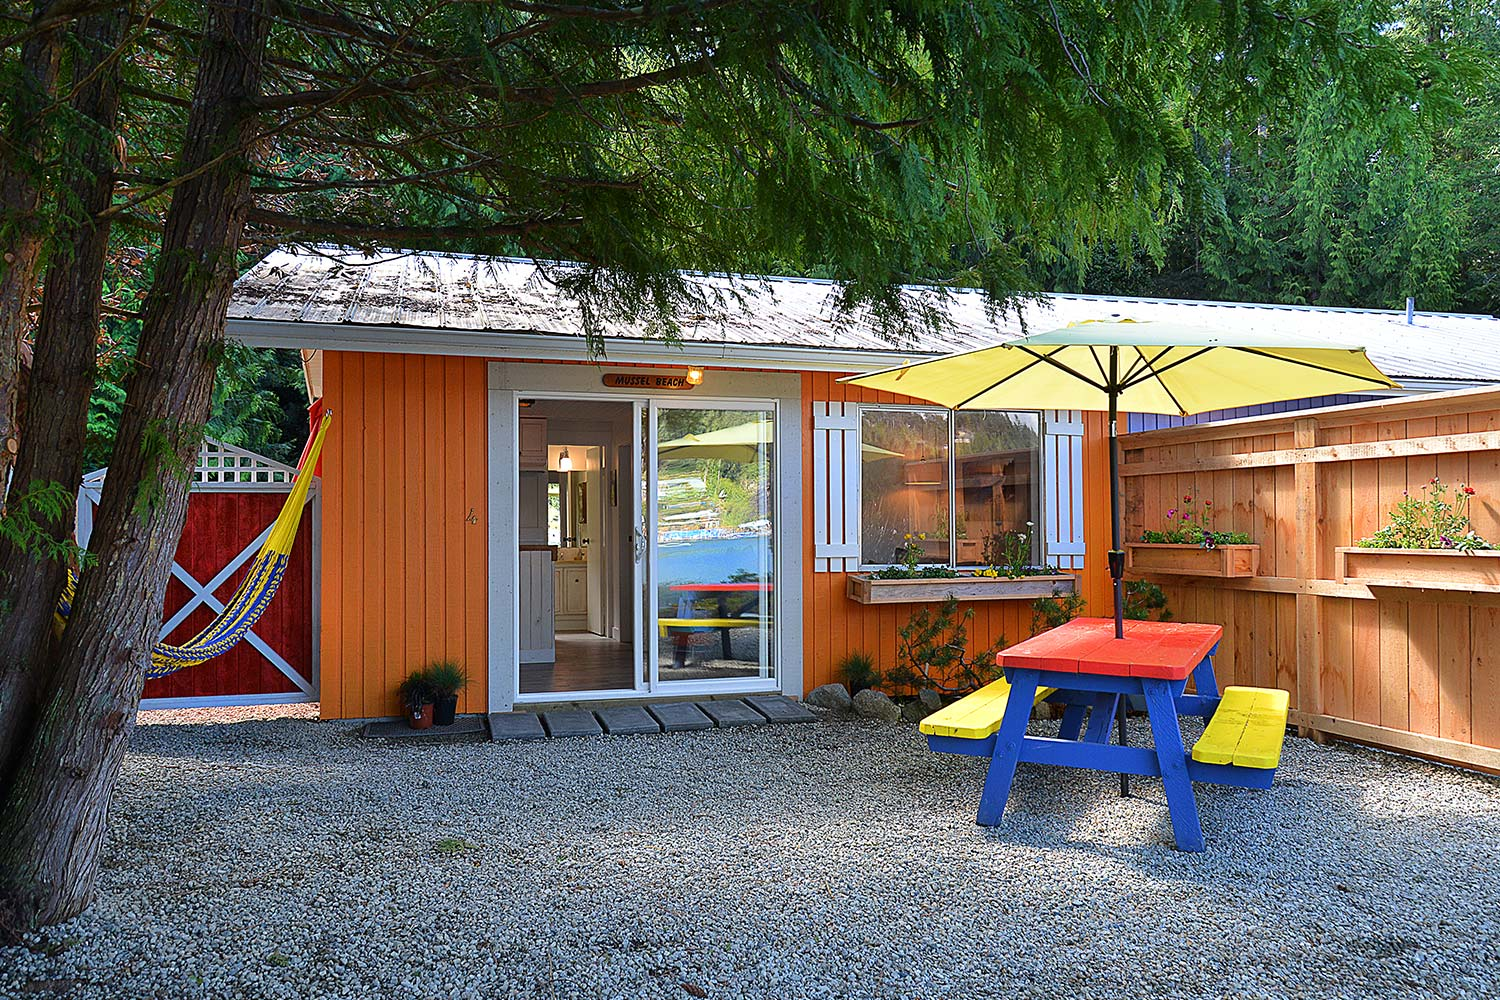 The outdoor view of John Henry's Pender Harbour cottage accommodation features a BBQ, hammock, multi-colour picnic table, and umbrella.